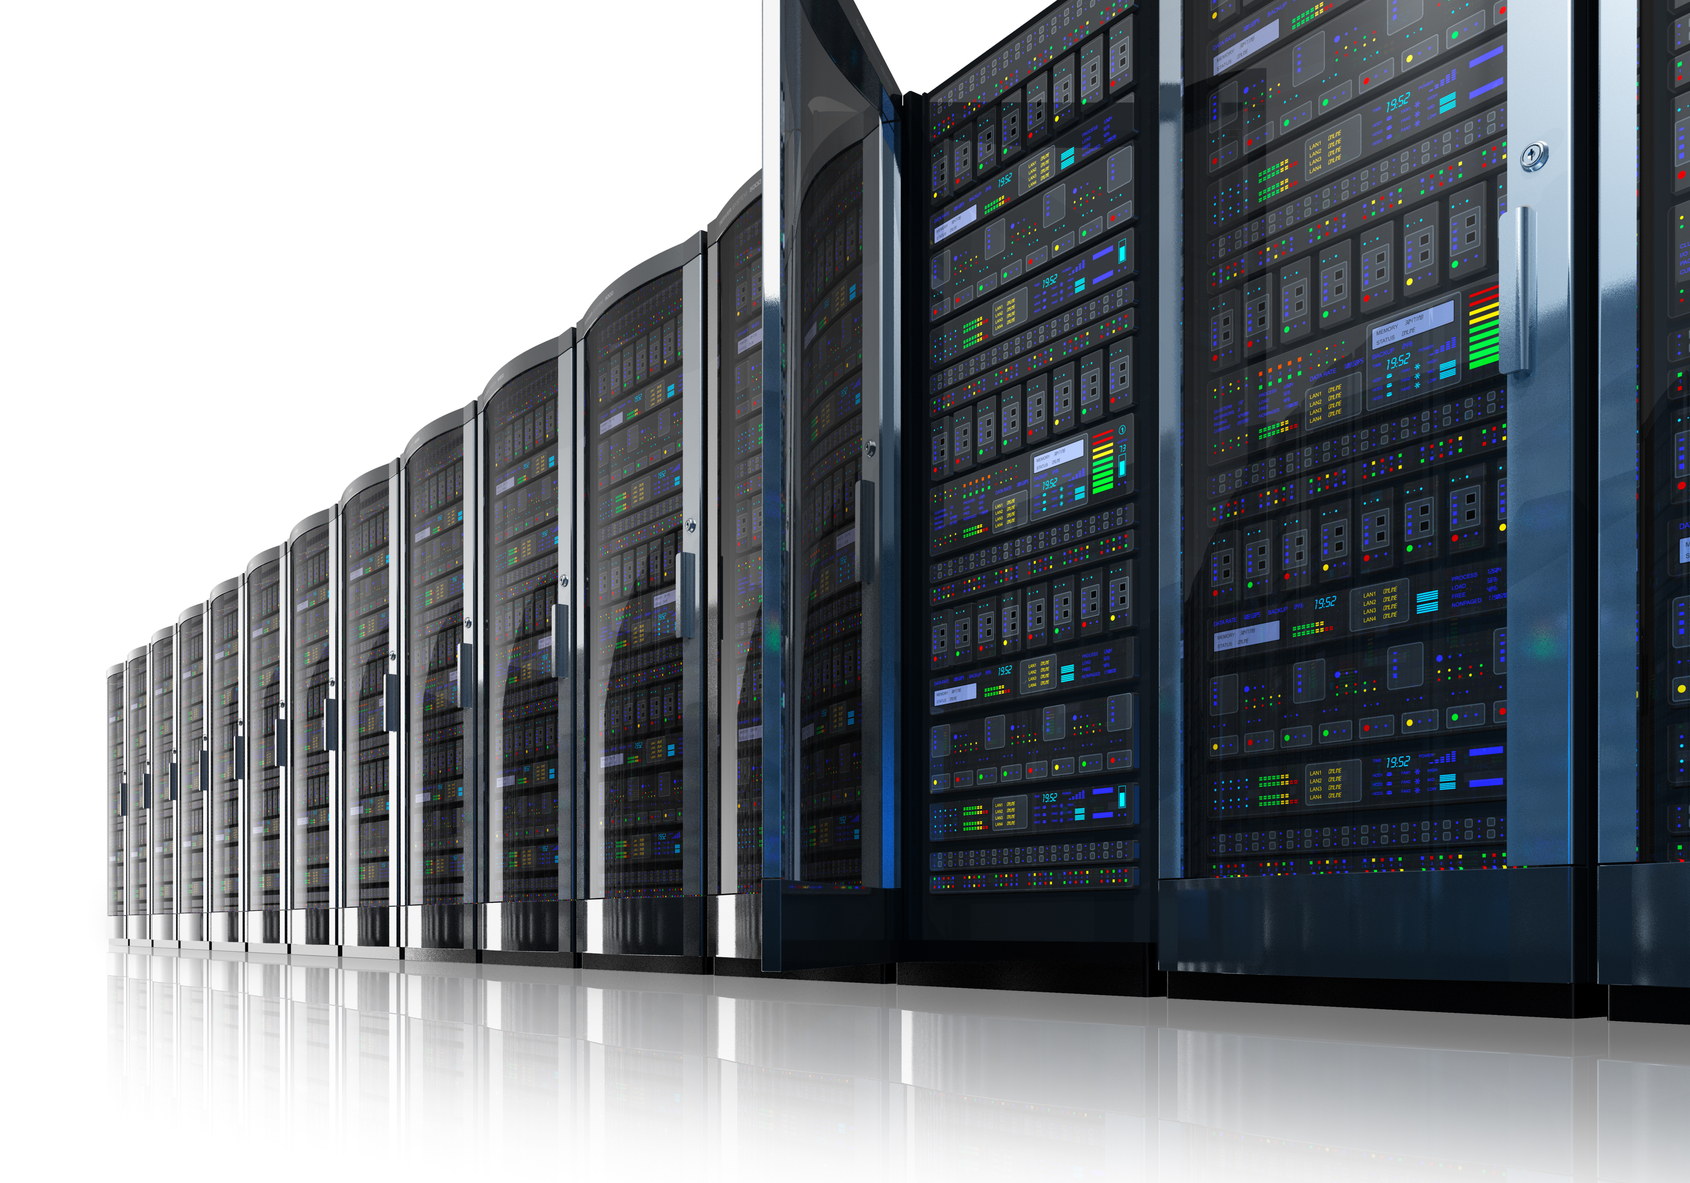 Row of network servers in data center